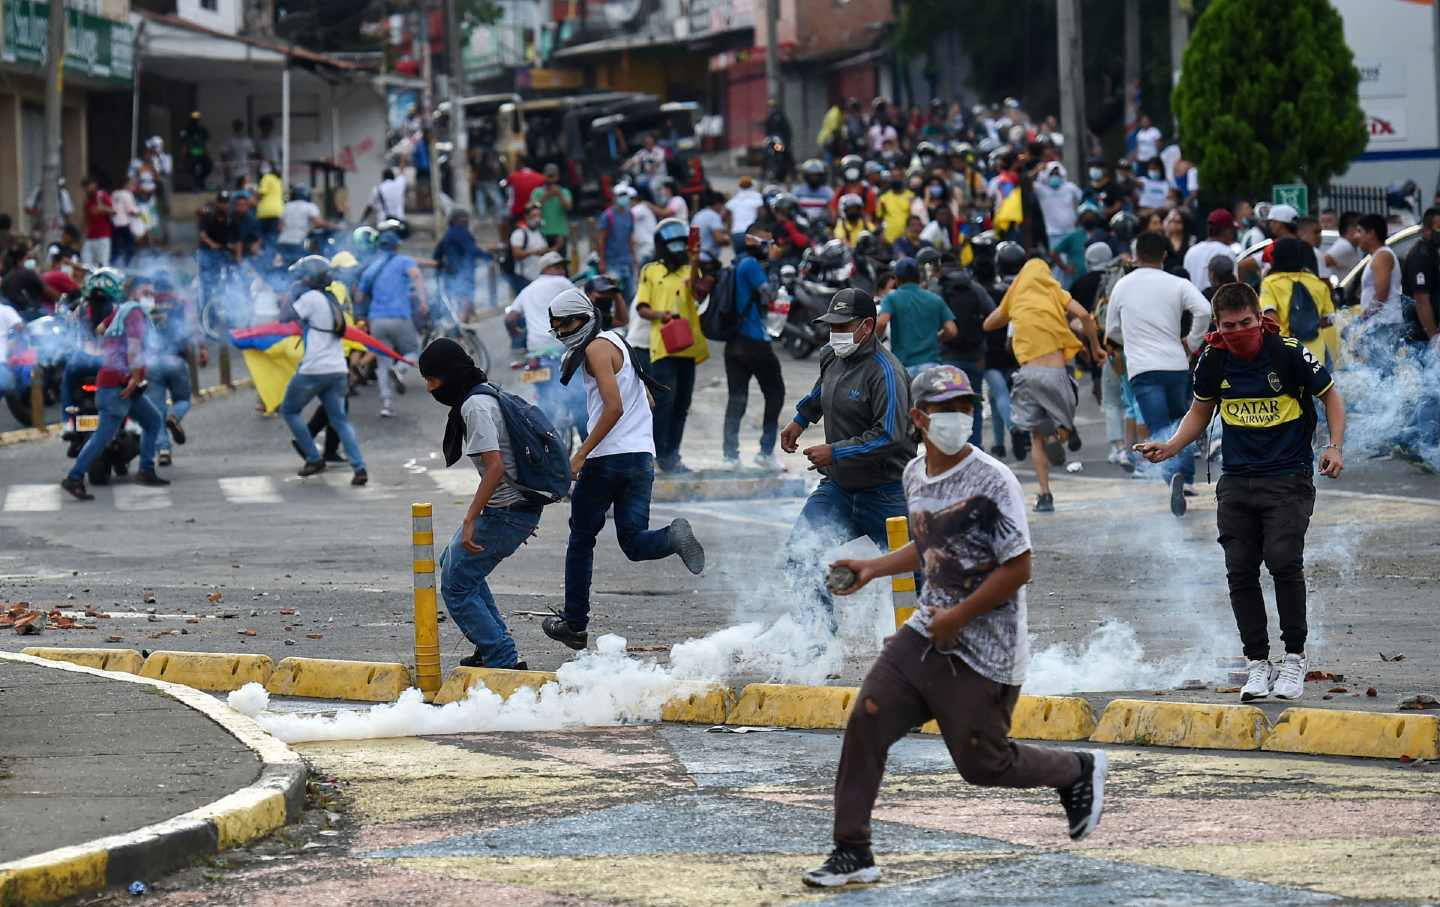 Cali Colombia protests